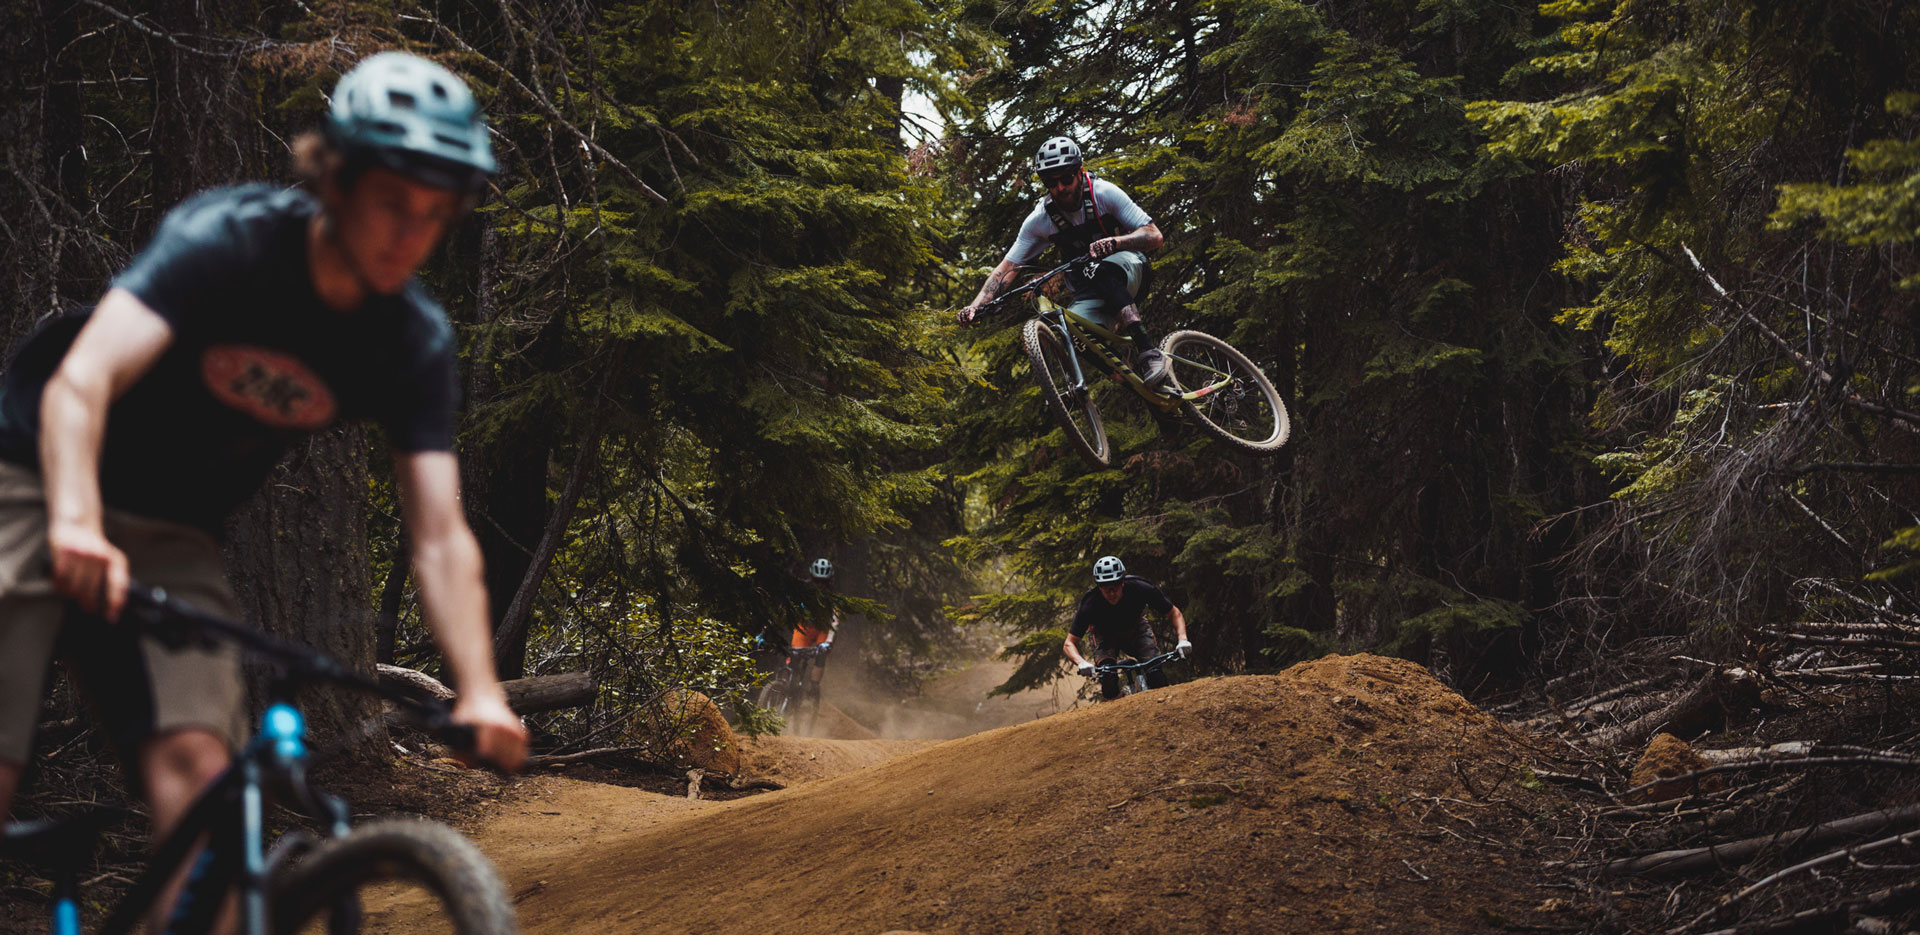 Bikers in air and on the trail - Budget Bike Shootout